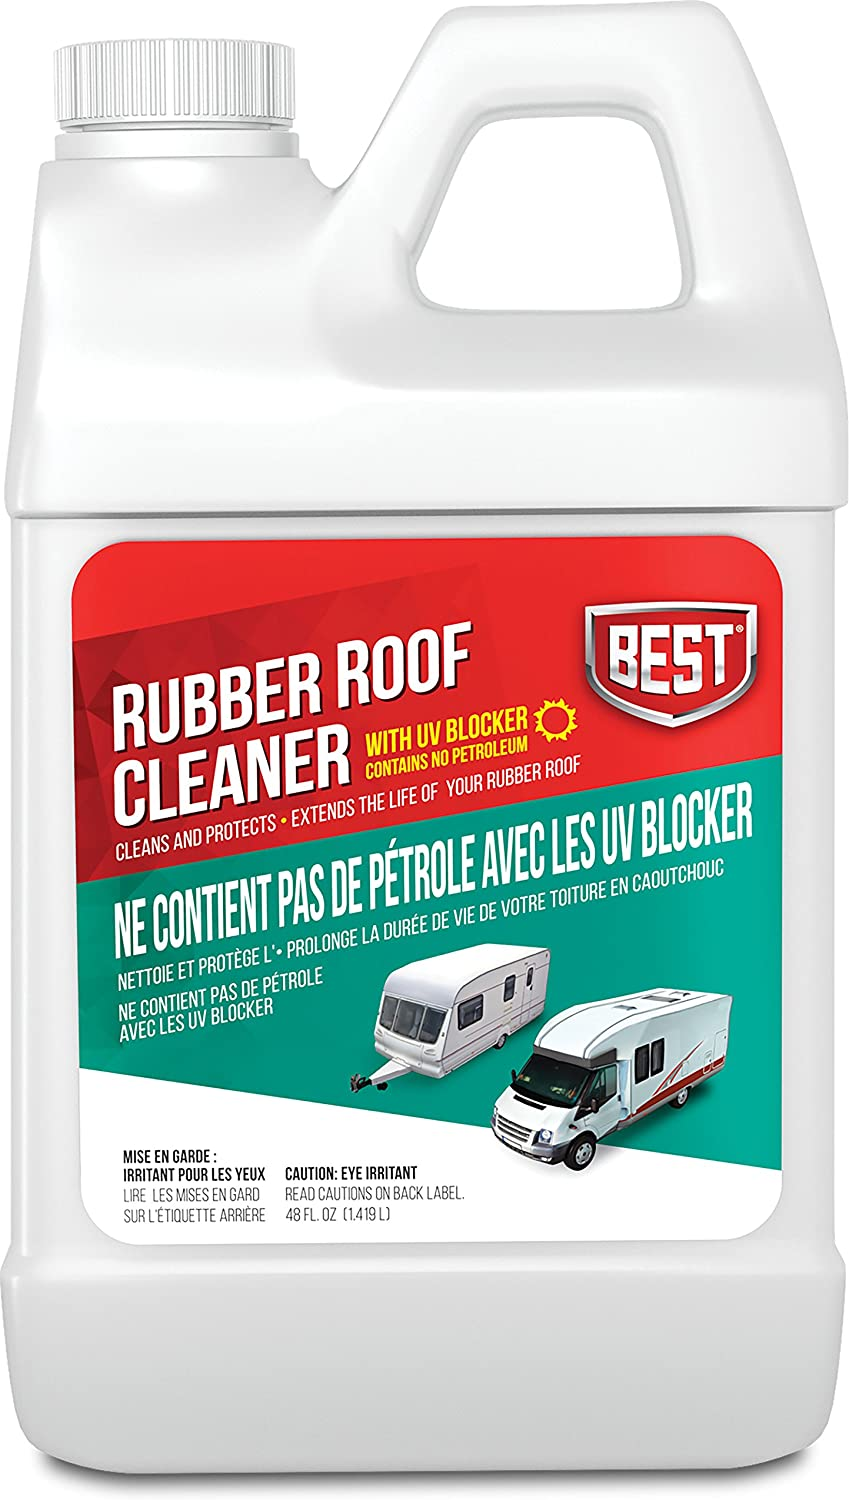 B.E.S.T. Rubber Roof Cleaner